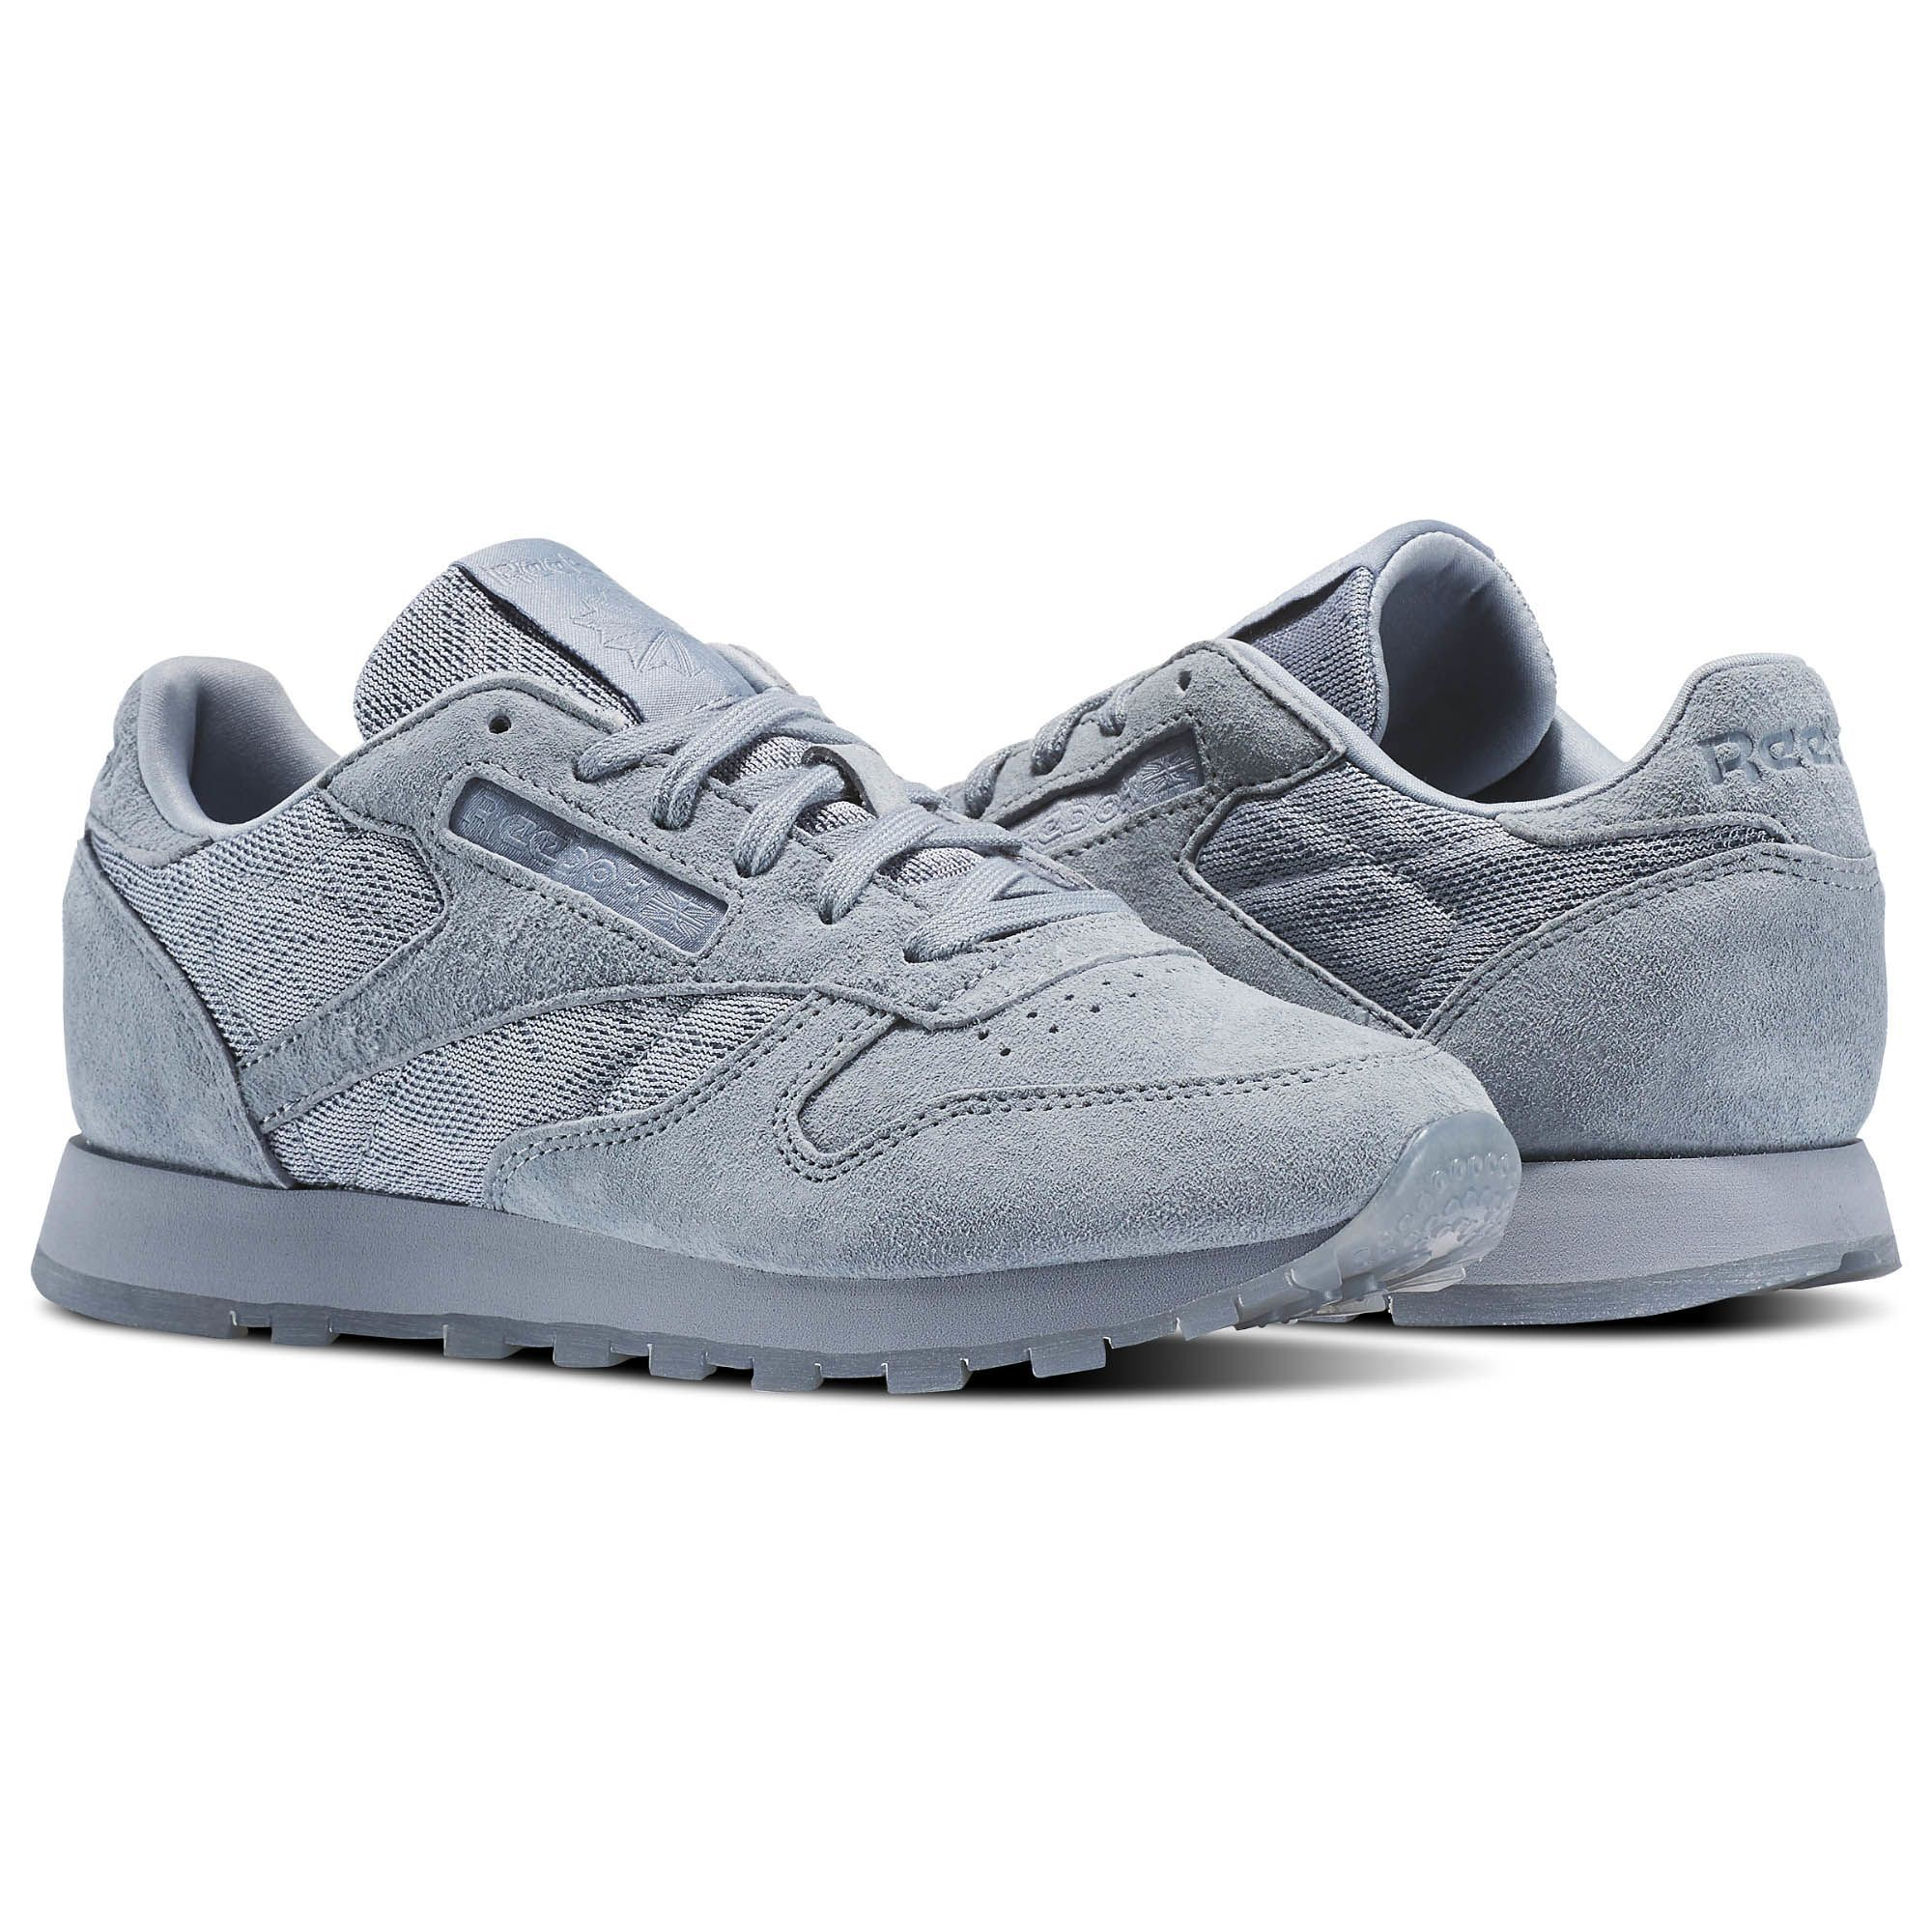 Reebok Classic Leather Lace Women's Shoes BS6523 Black